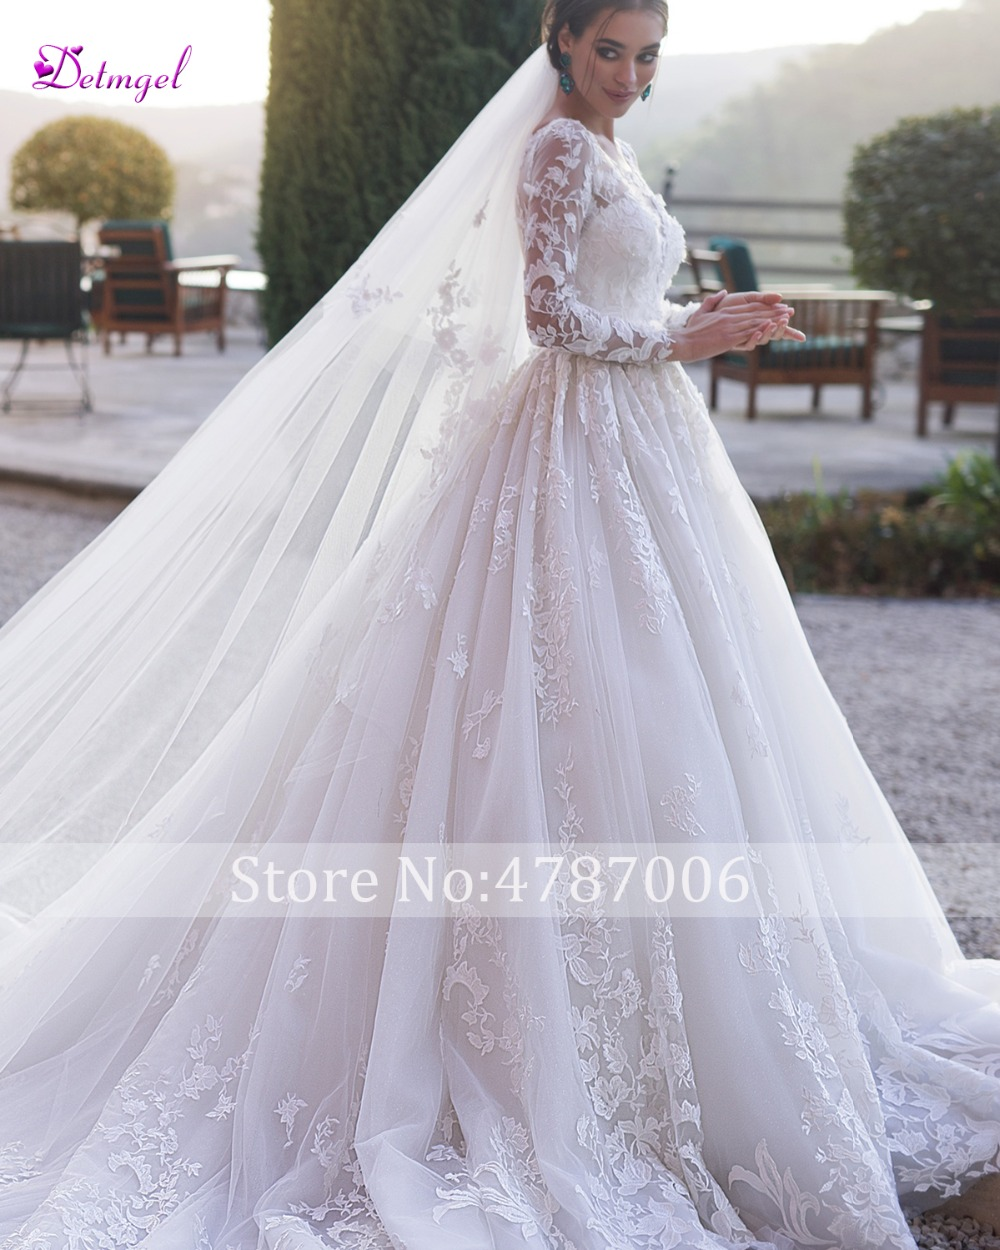 Gorgeous Appliques Chapel Train Ball Gown Wedding Dress 2019 Scoop Neck Beaded Long Sleeve Flowers Princess Bride Gown Plus Size